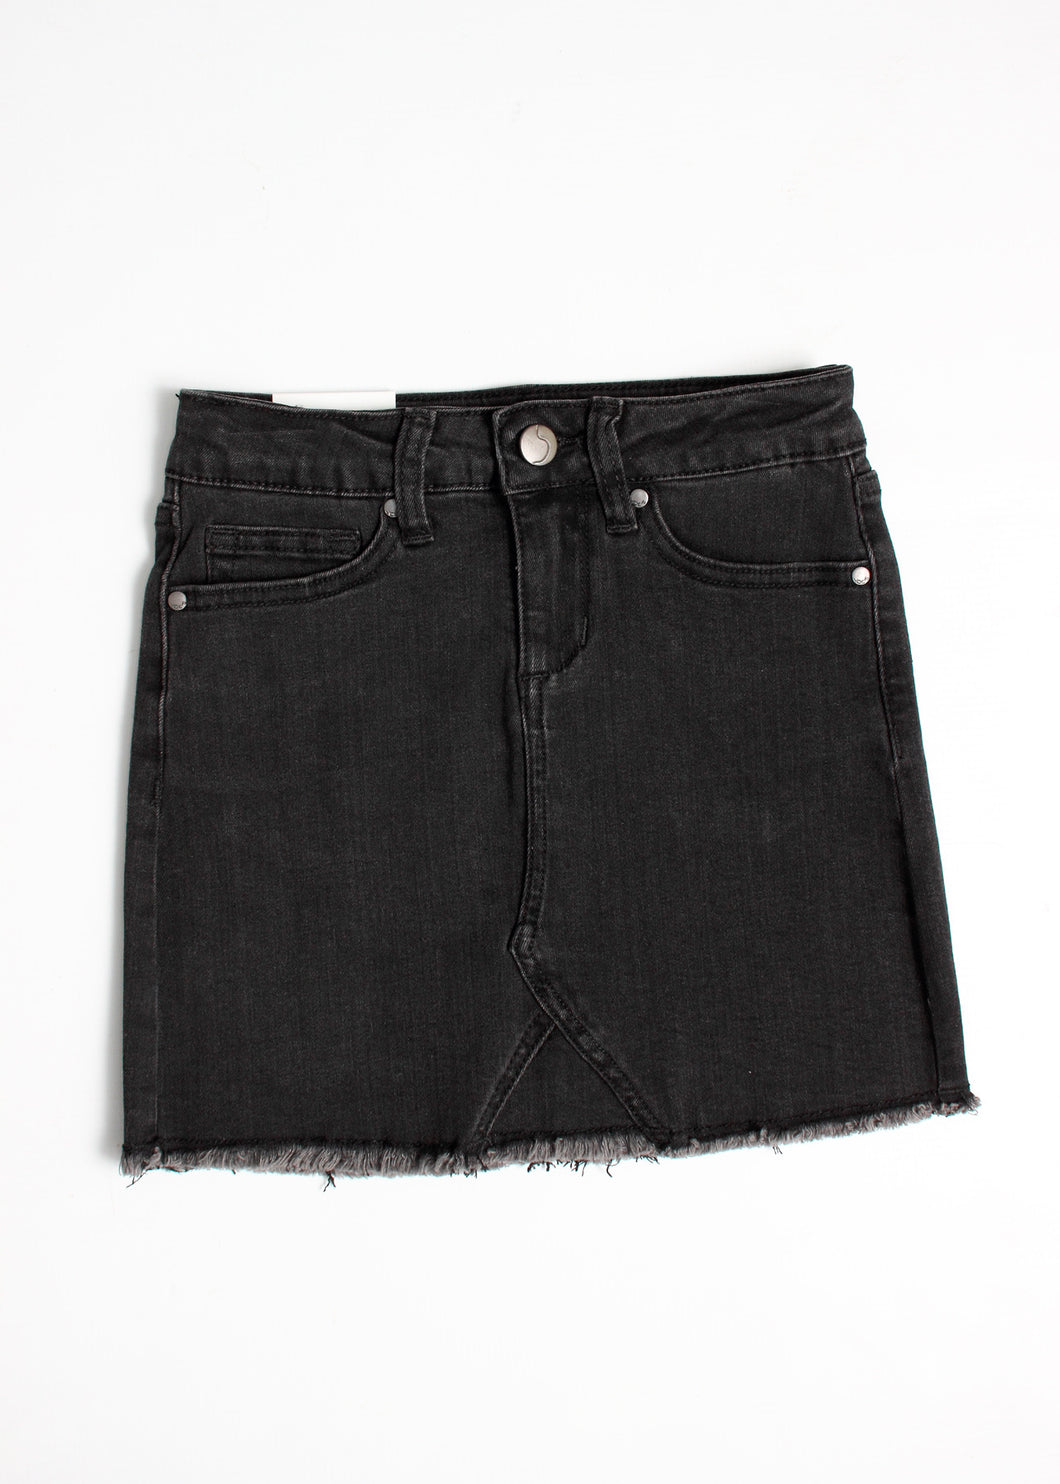 black denim skirt - tween girls